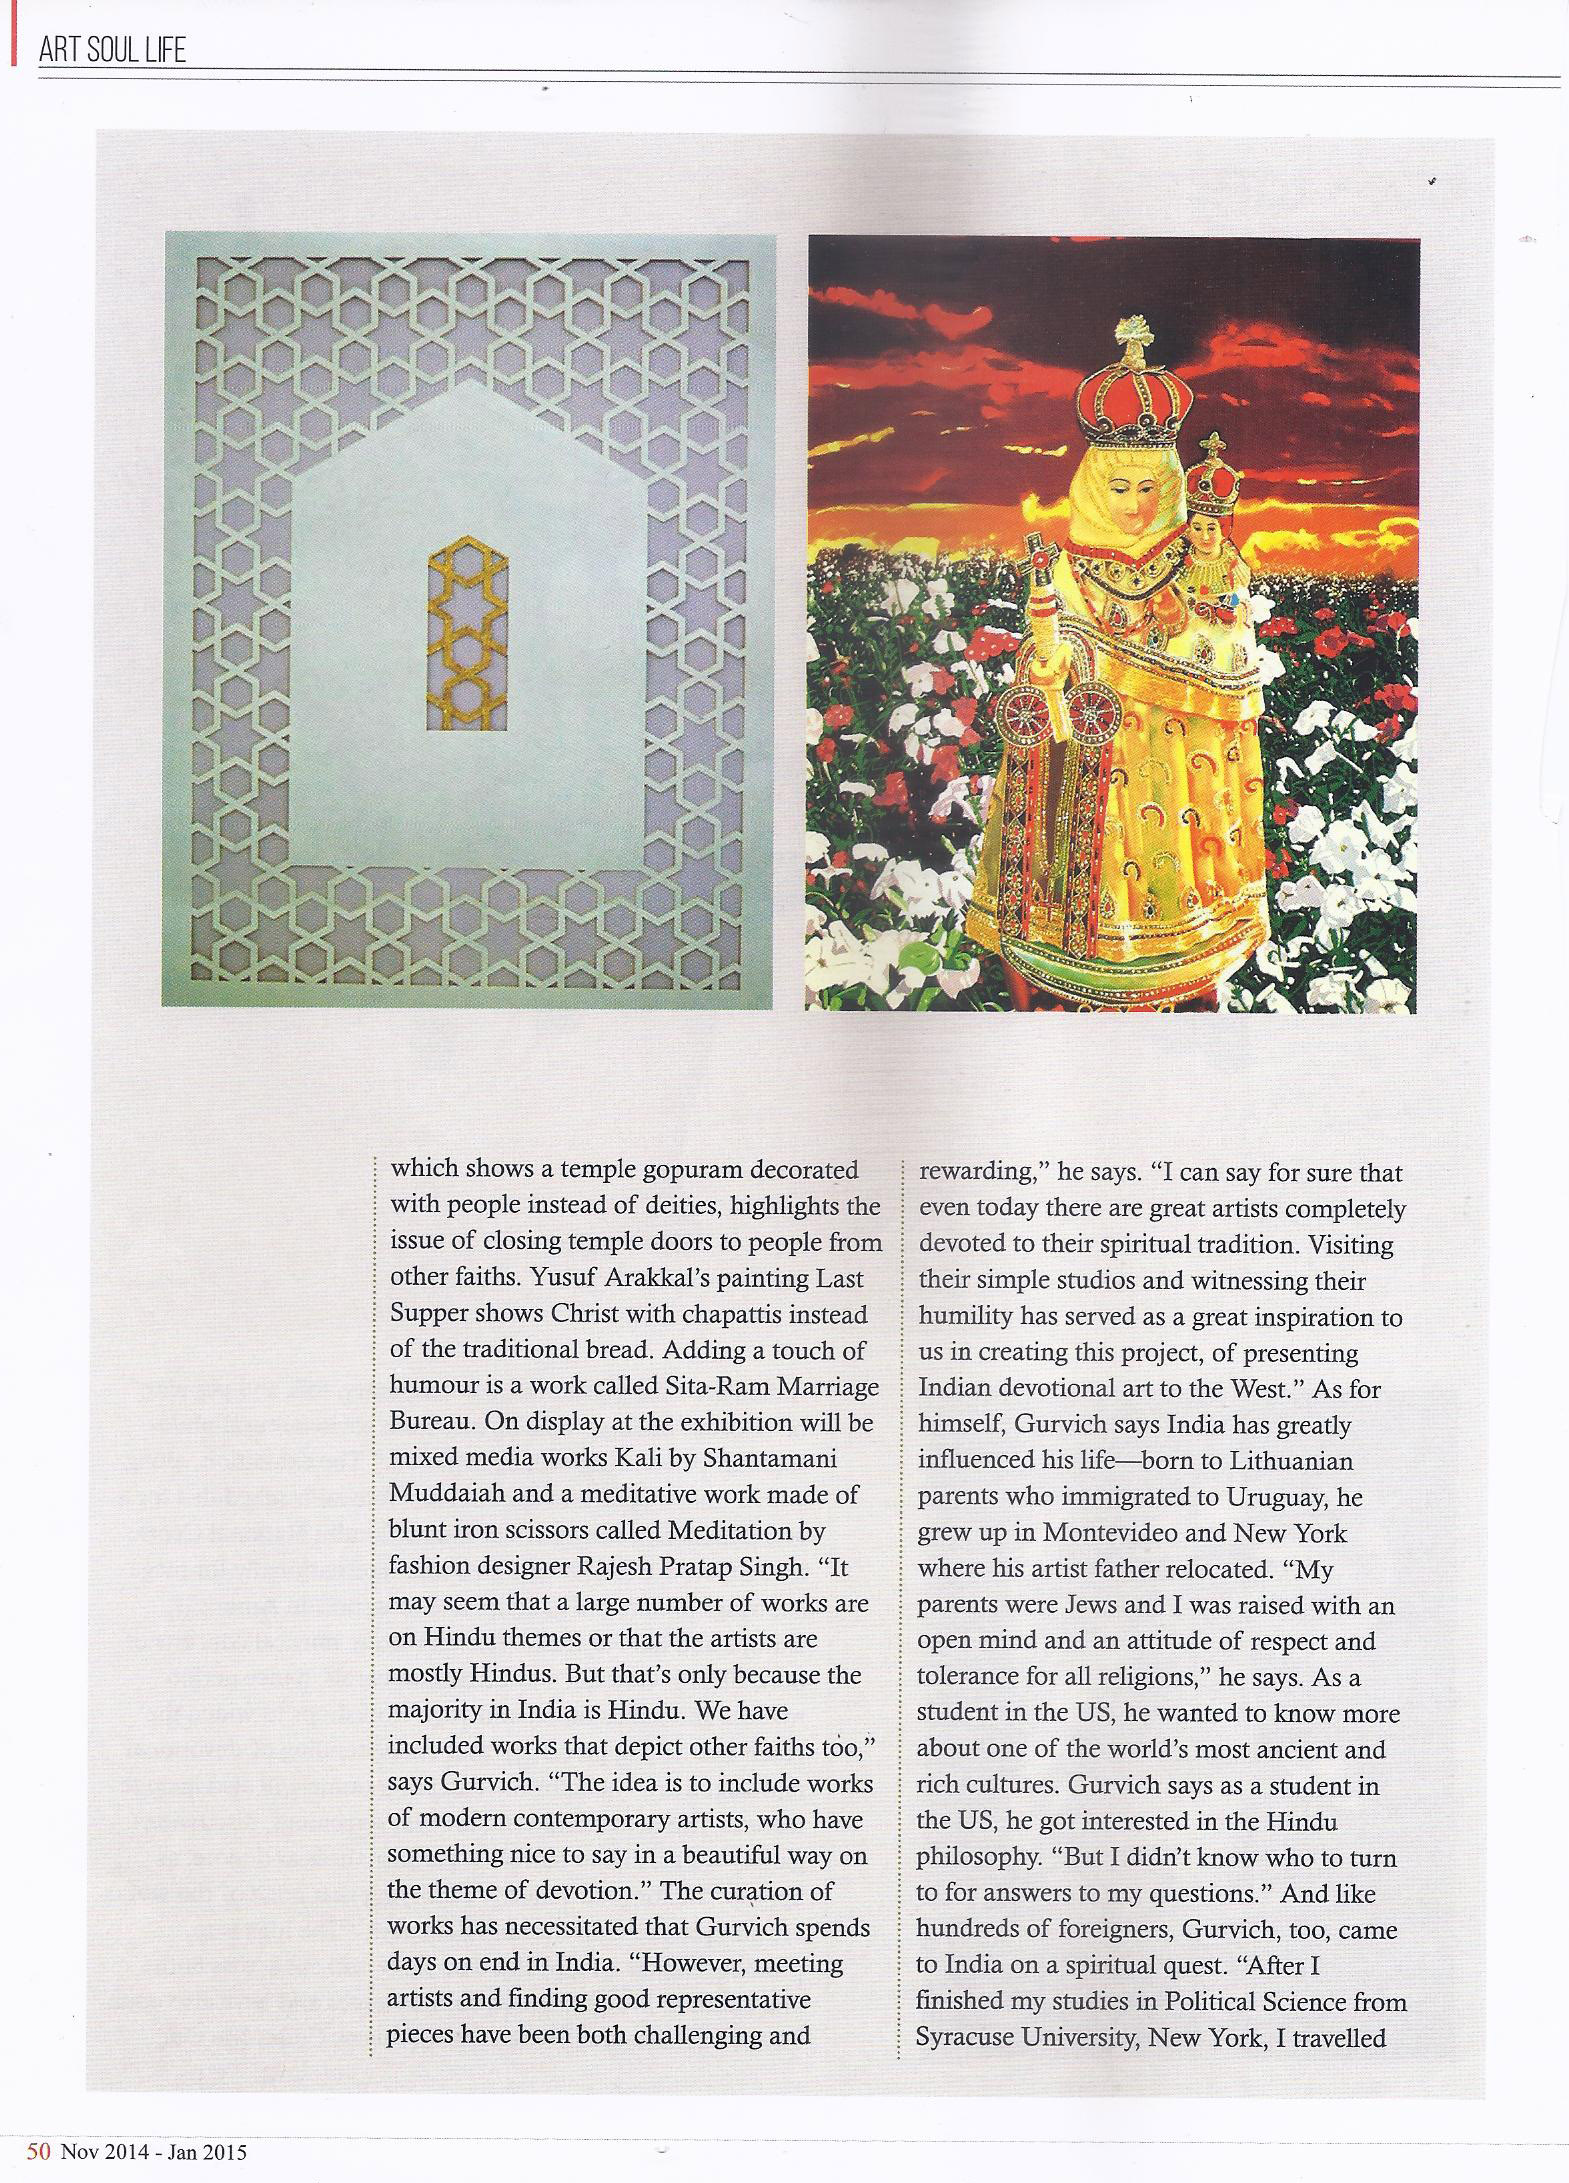 Art Soul Life (National Edition November 2014 - January 2015 Issue)- For the love of god Pg-5